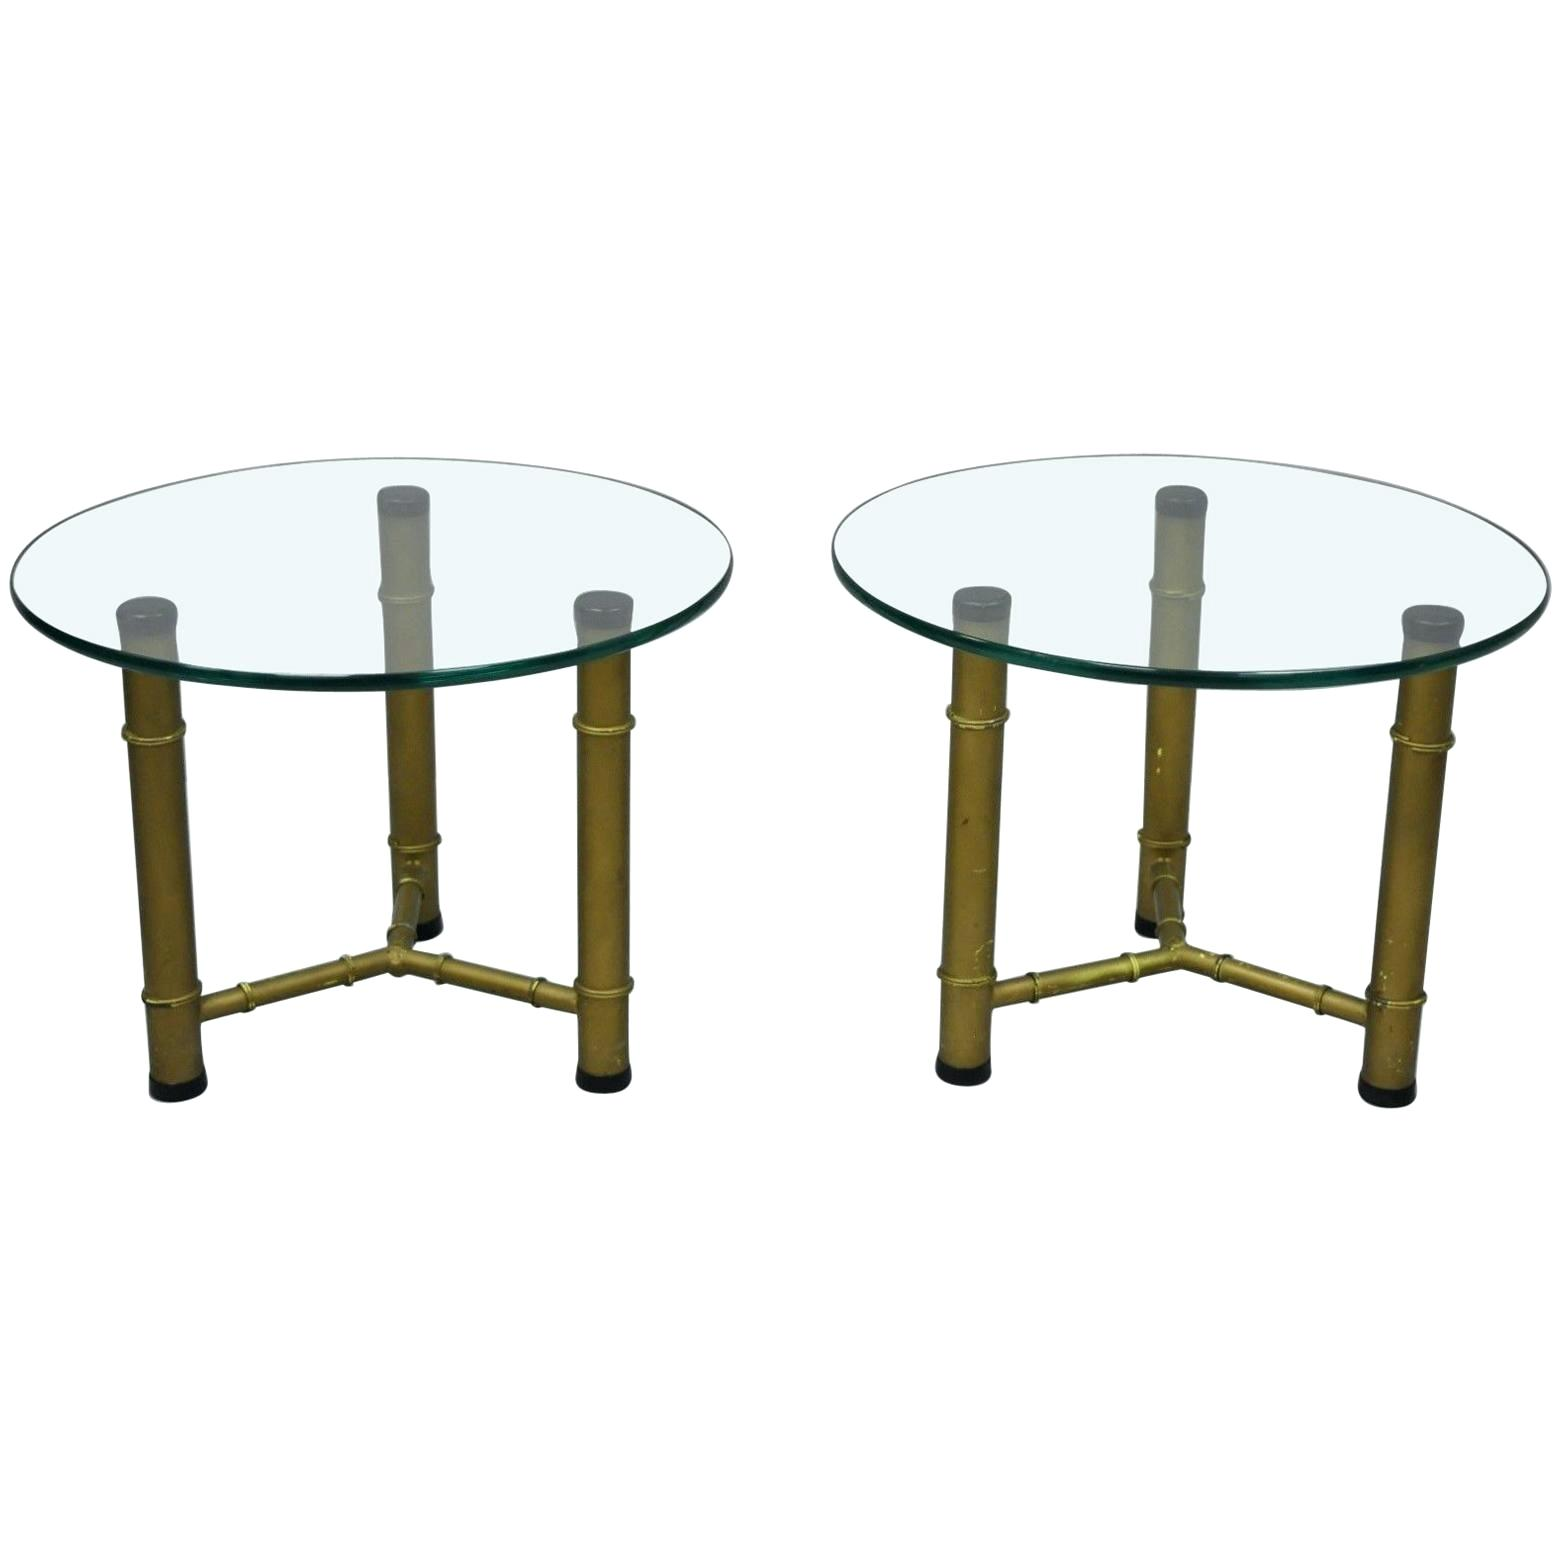 round glass top end table sarakdyck pair metal faux bamboo low side tables regency for replacement alternatives white distressed farmhouse dining rebar oval coffee calgary best